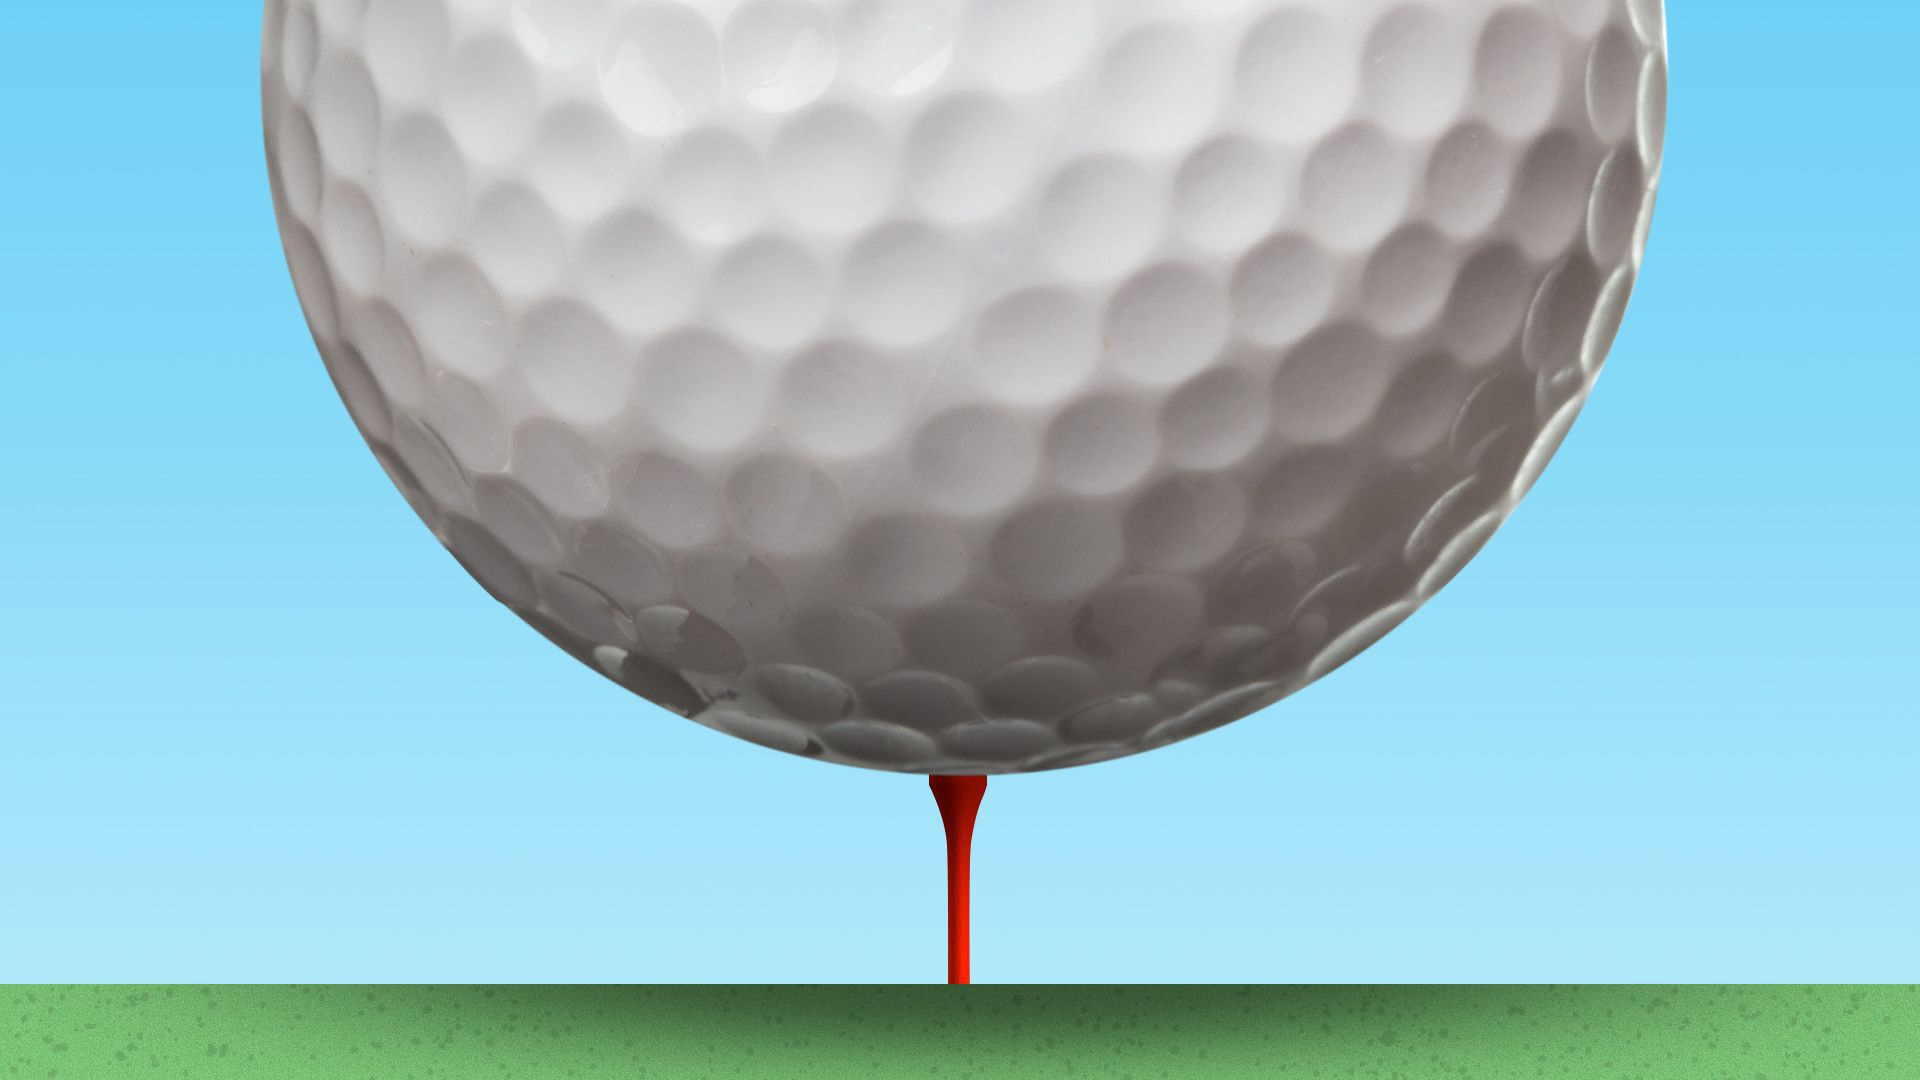 Oversized golf ball on a tee